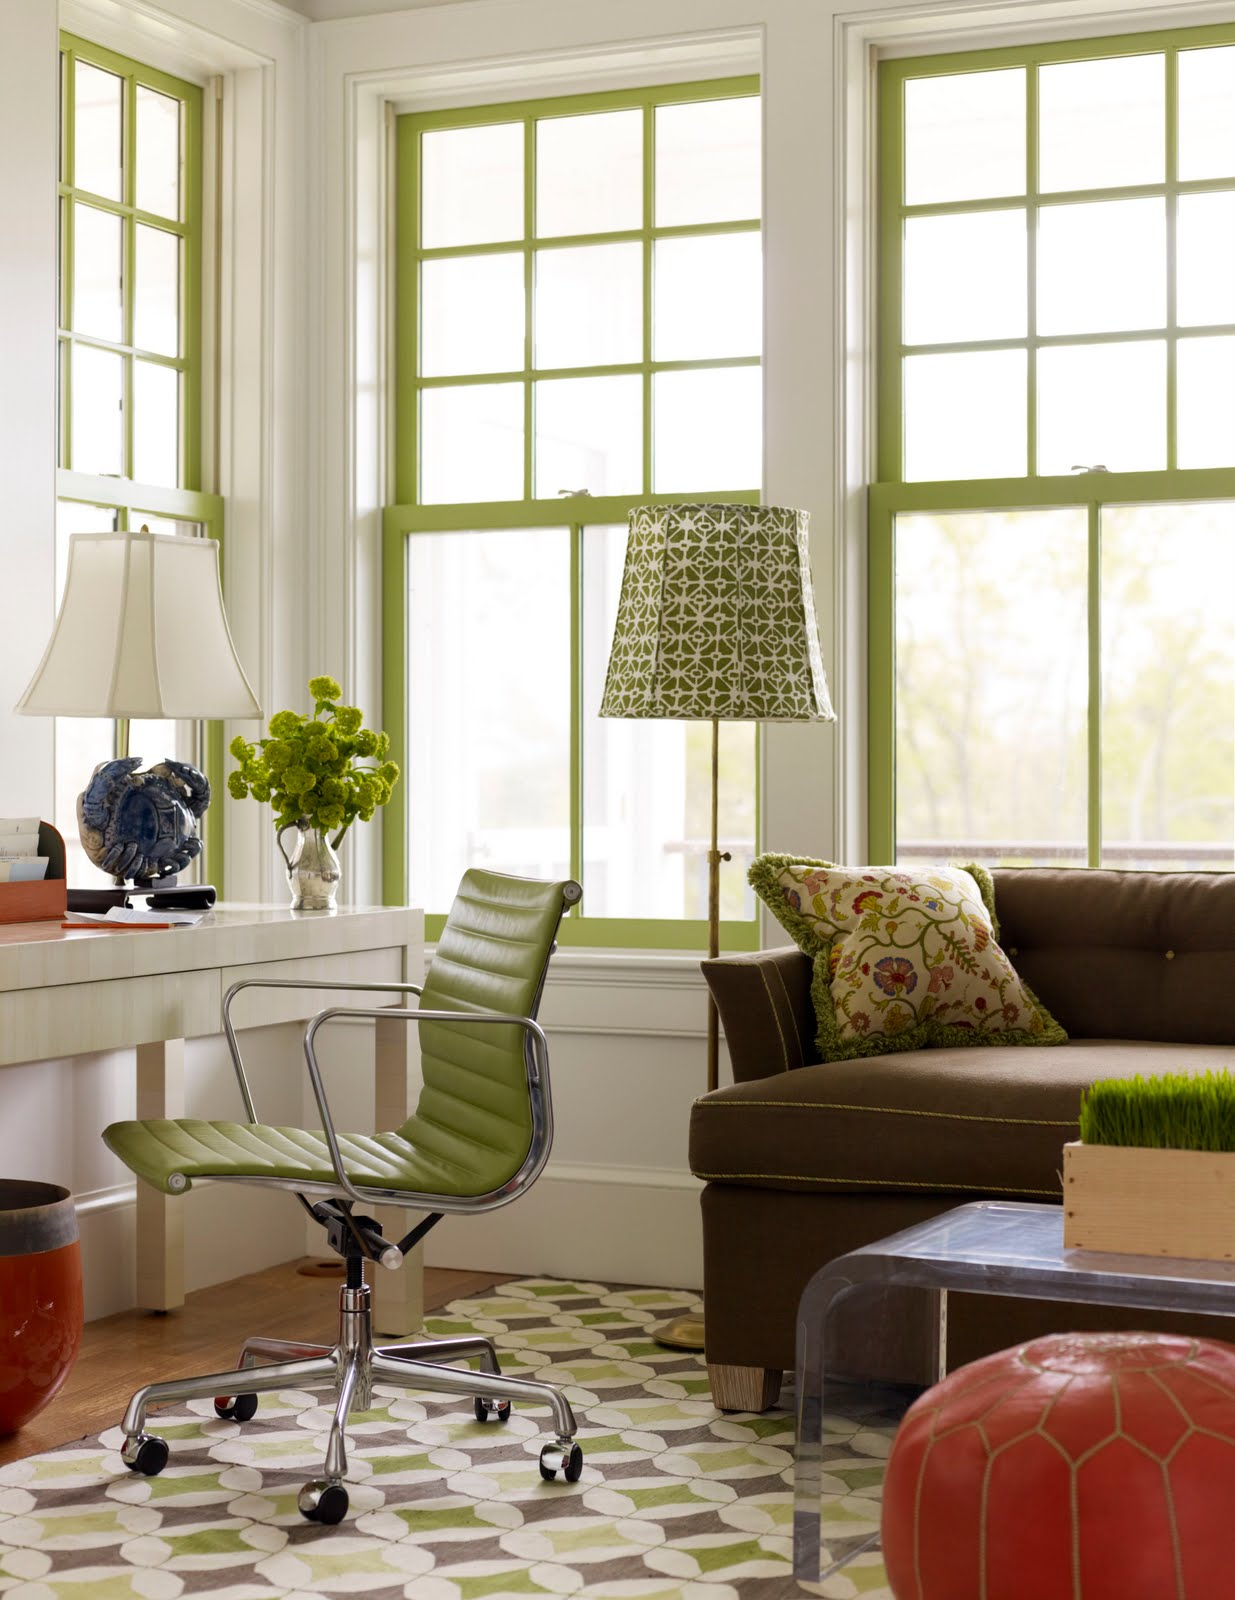 Clever use of chartreuse throughout the room